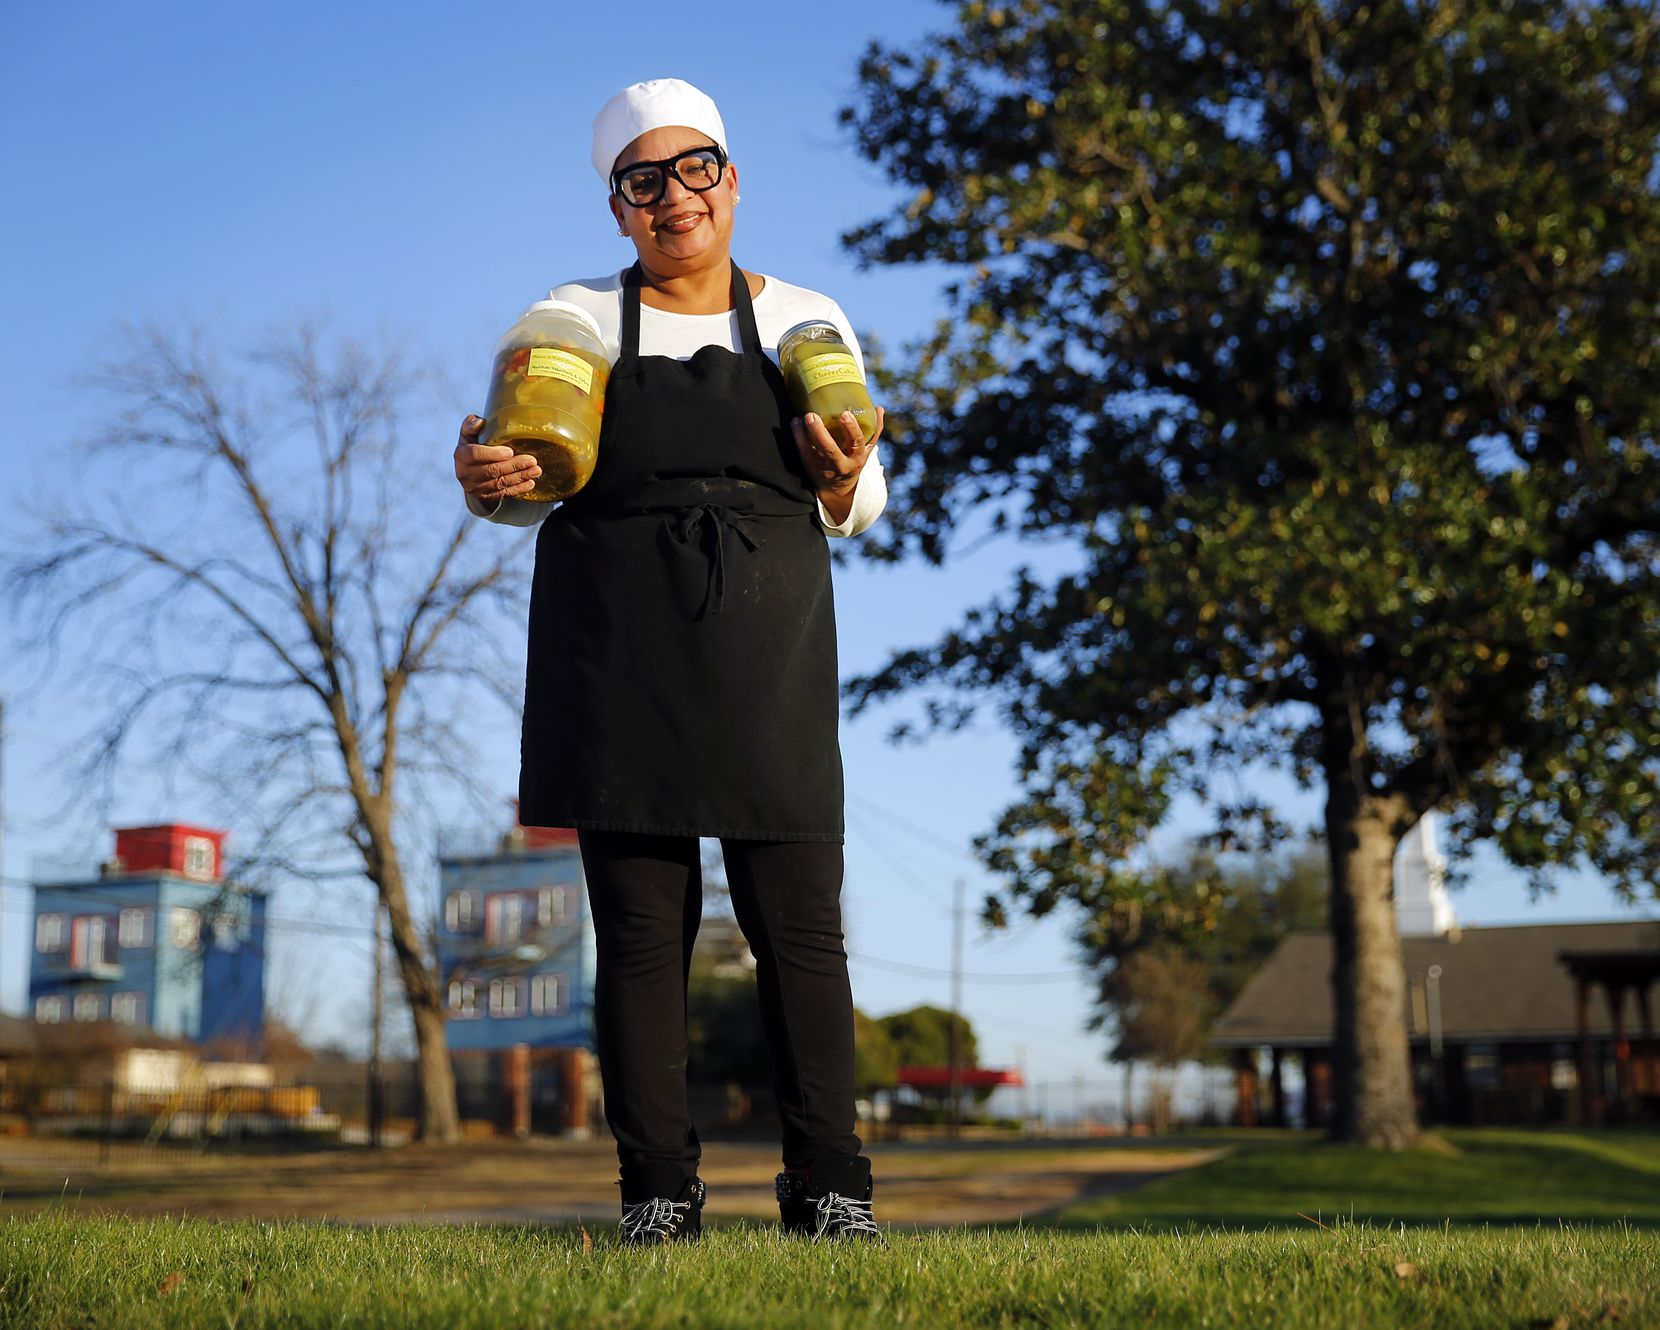 Pinson & Cole's Gourmet Pickles owner Stephanie Pinson-Cole poses with some of her most popular pickles at the Cornerstone Church Cafeteria. Since 2011, she has been making and perfecting 18 varieties of canned pickles, including Feisty, Sour Apples and Cheesecake.